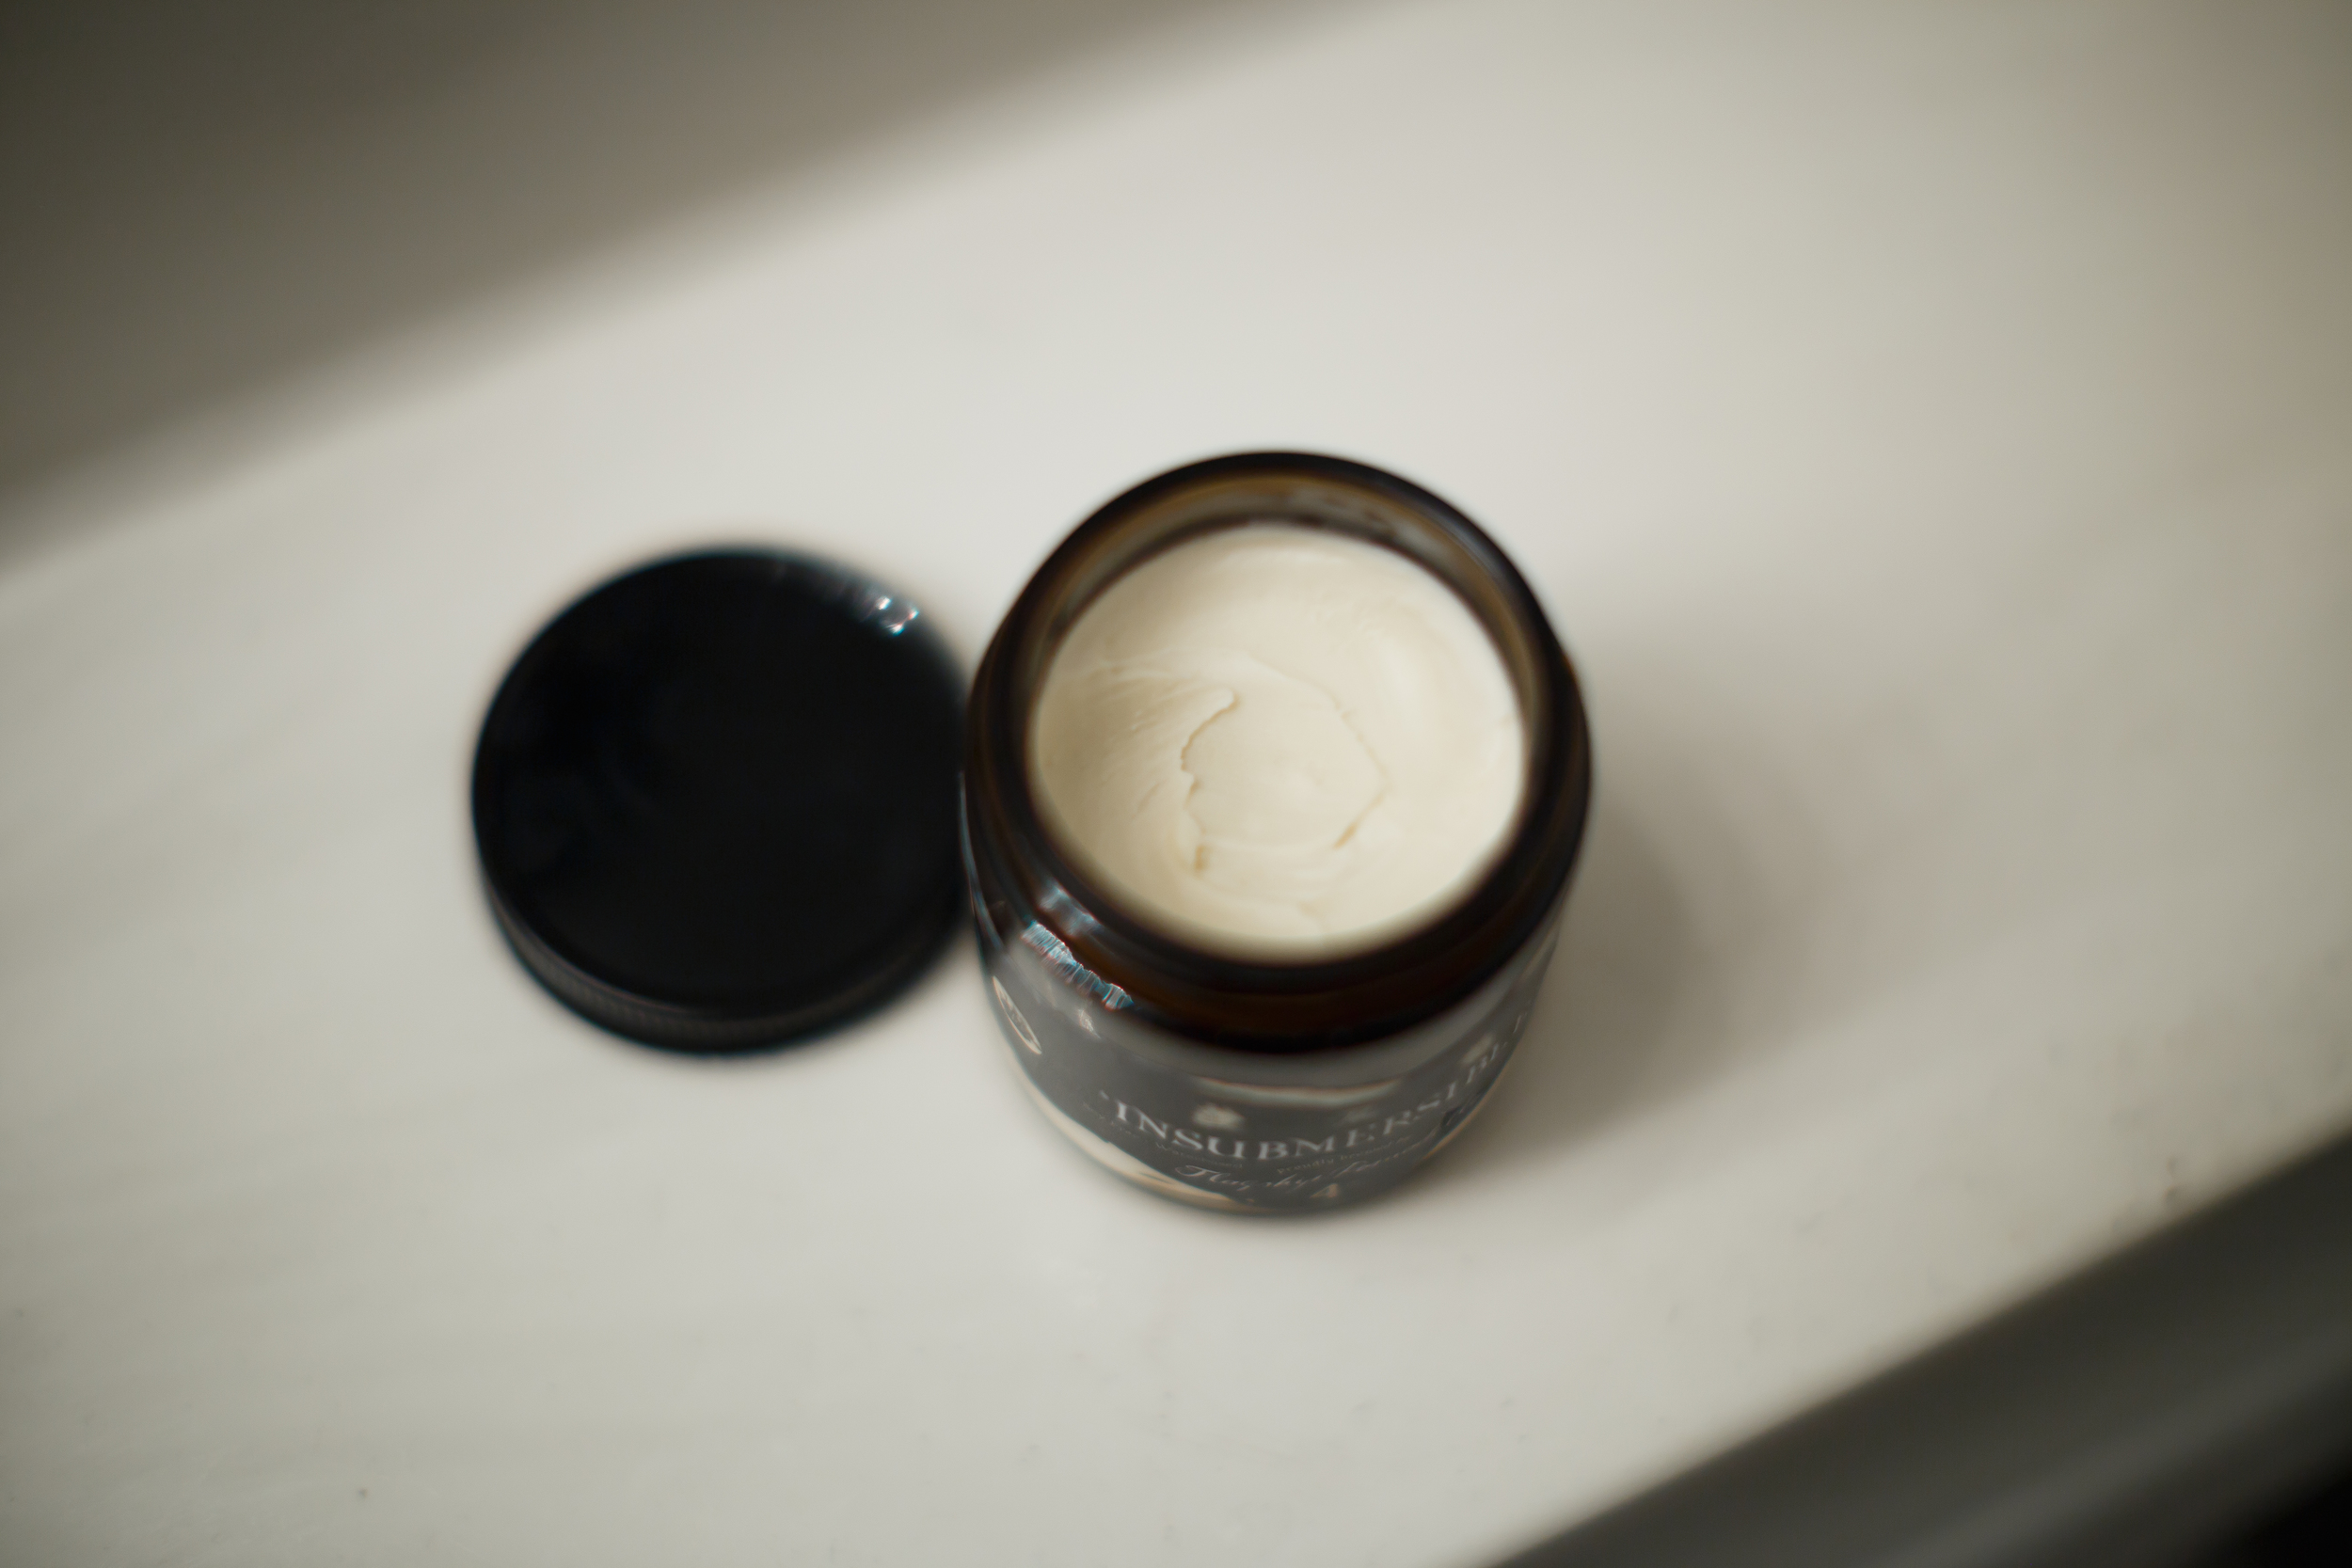 Flagship Pomade Company Insubmersible Review by The Pomp | Thank You Based Pomp TYBP Water Based WB Opened Jar Product